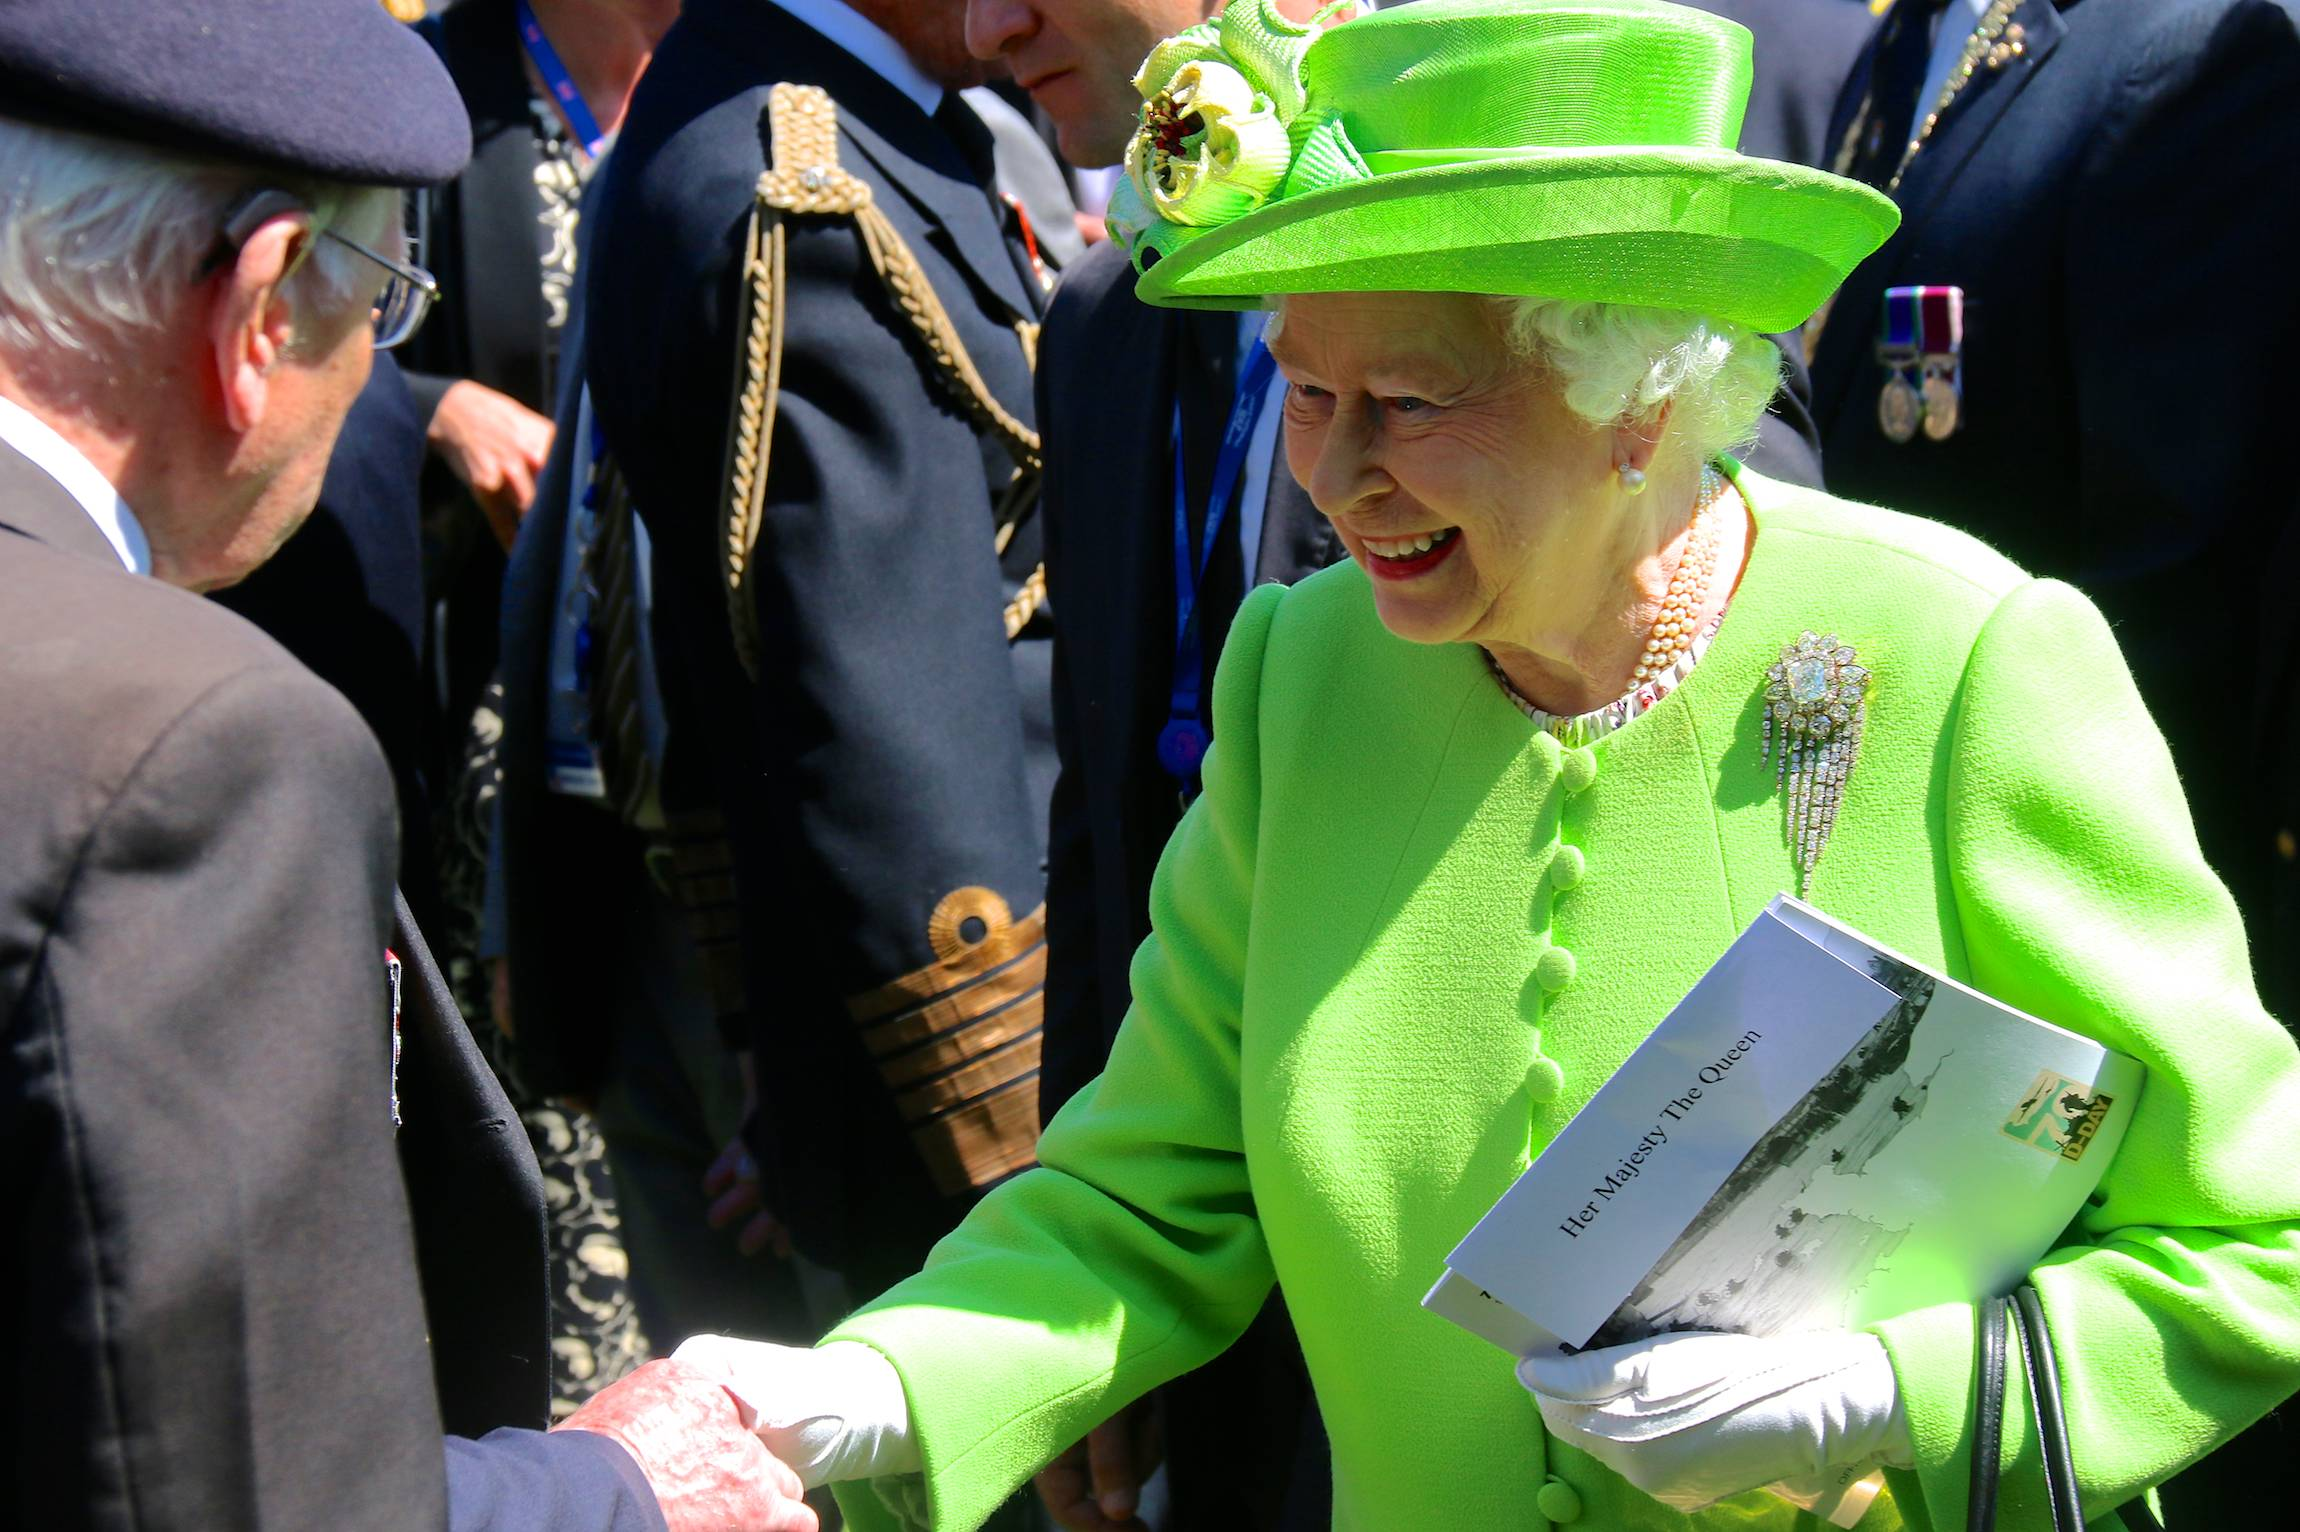 Her Majesty Queen Elisabeth II greets a veteran after the Franco-British Ceremony of the 70th anniversary of D-Day, on the Bayeux Cemetery in France, June 6, 2014.